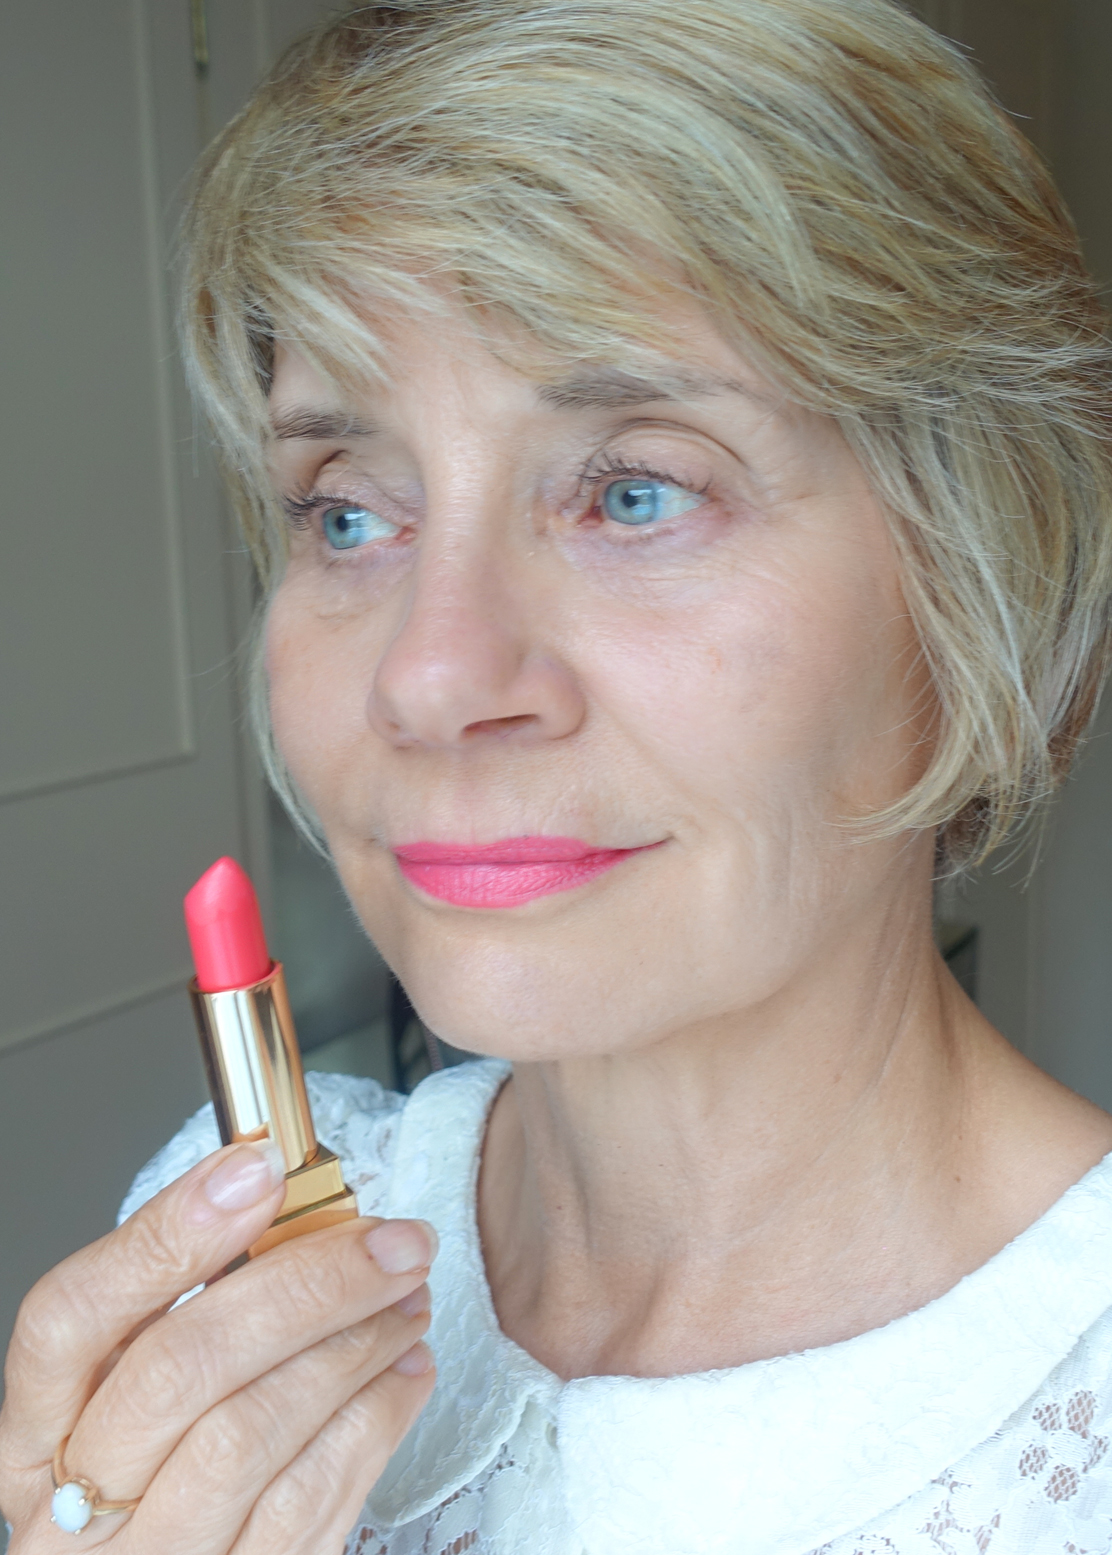 True to colour: YSL Rouge Pur Couture lipstick in Rosy Coral, worn by over 40s blogger Gail Hanlon